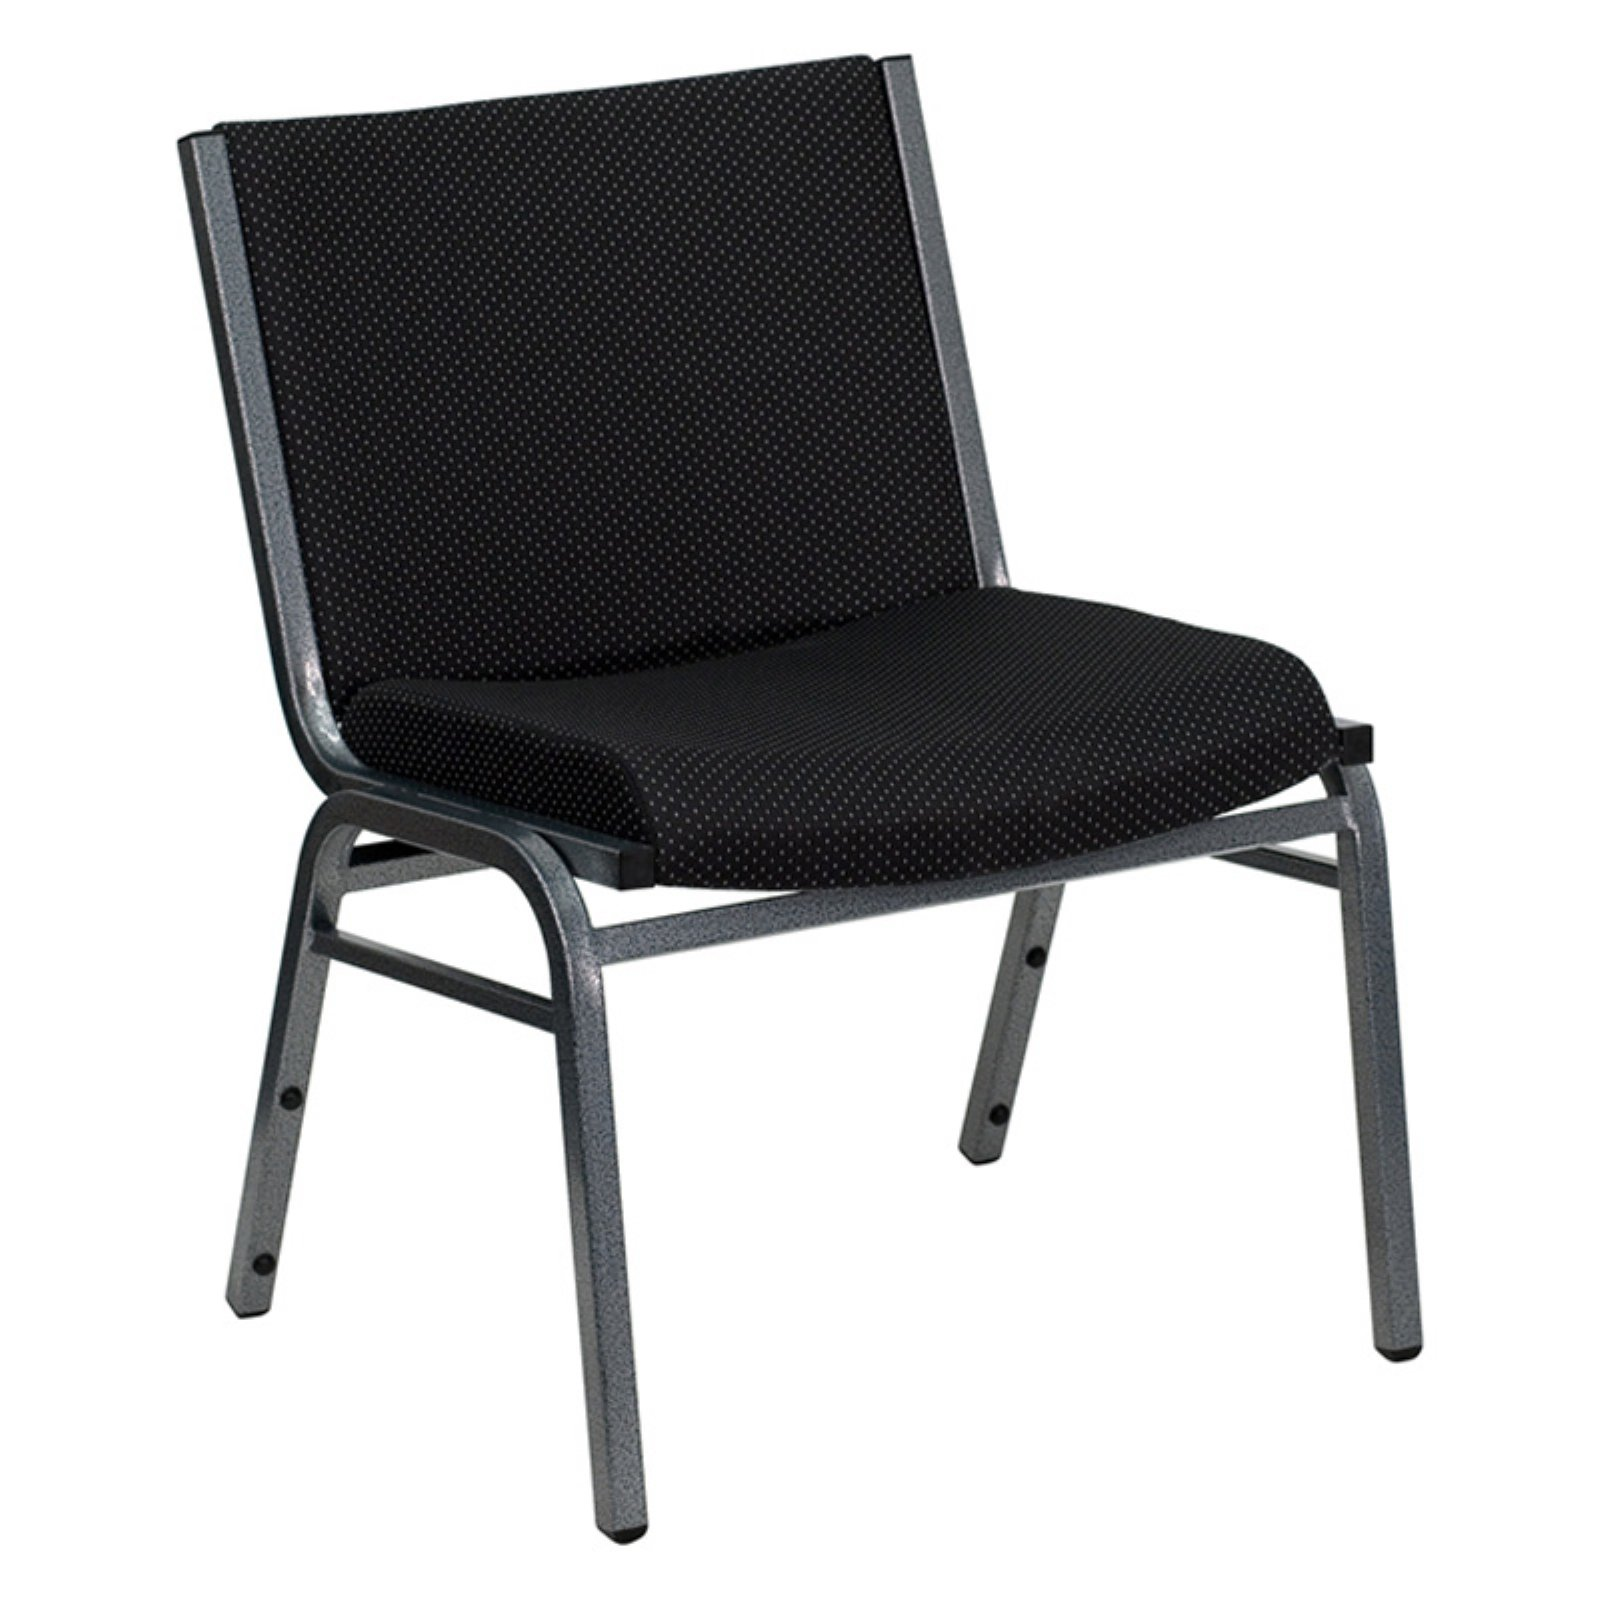 Flash Furniture HERCULES Series 1000 lb Capacity Big and Tall Extra Wide Fabric Stack Chair with Ganging Bracket, Multiple Colors